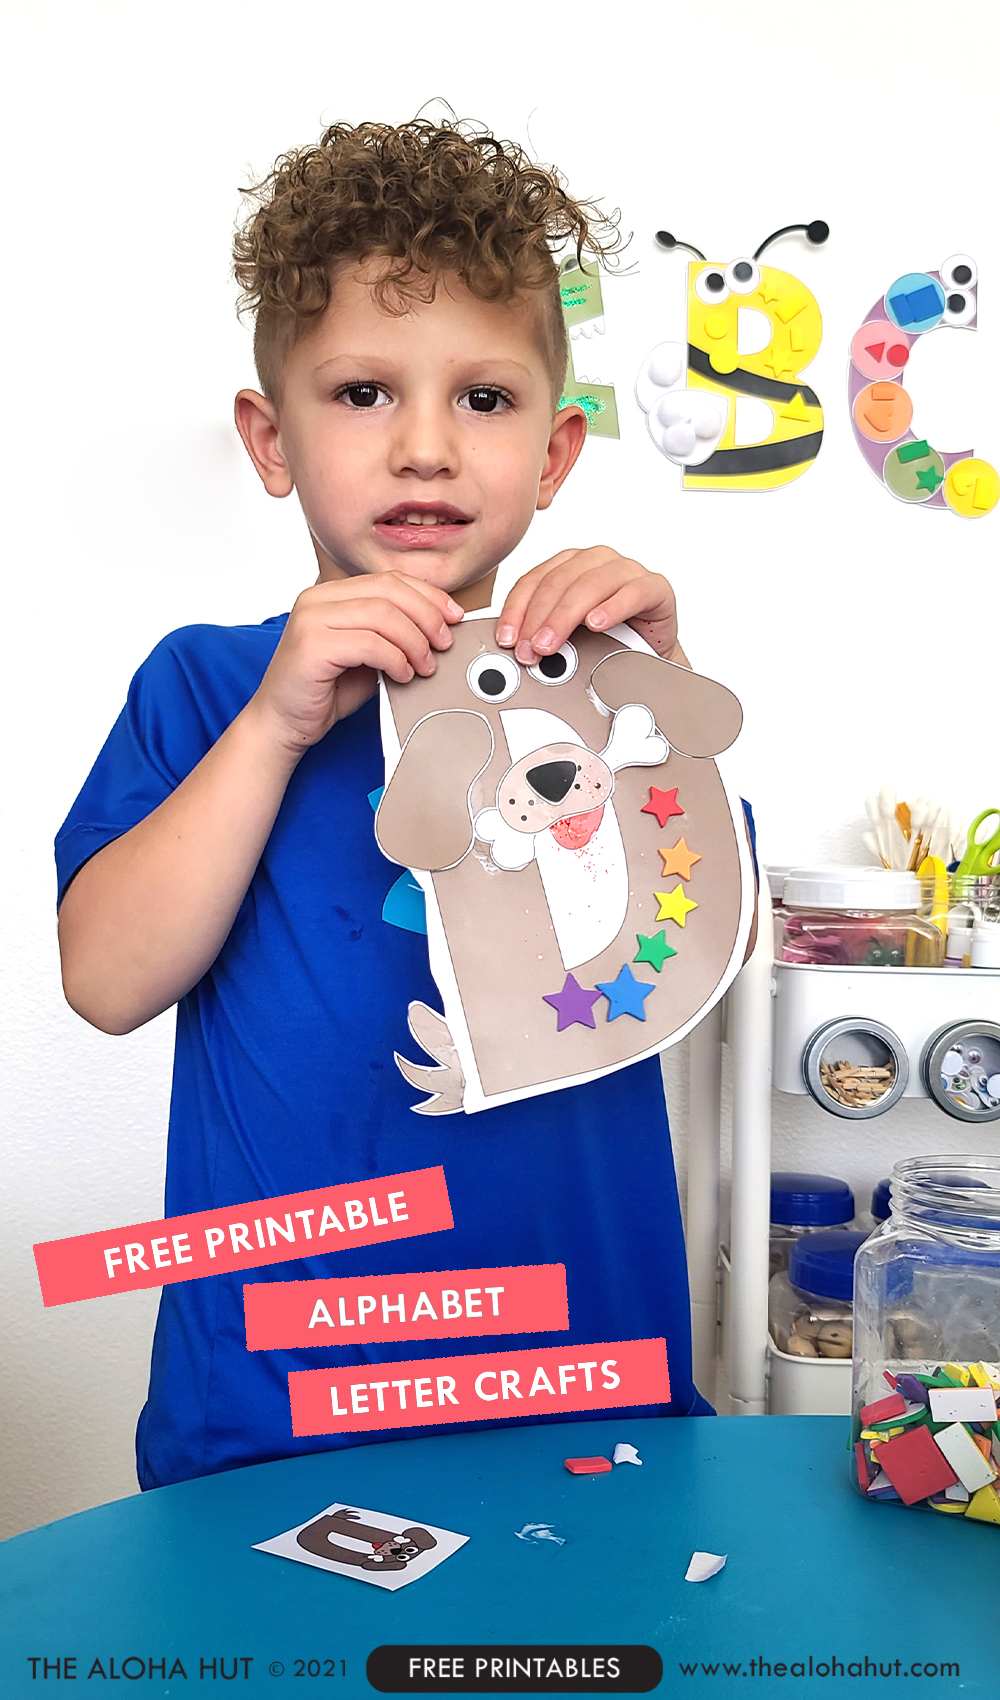 Alphabet Letter Crafts - Letter D - free printable 3 by the Aloha Hut